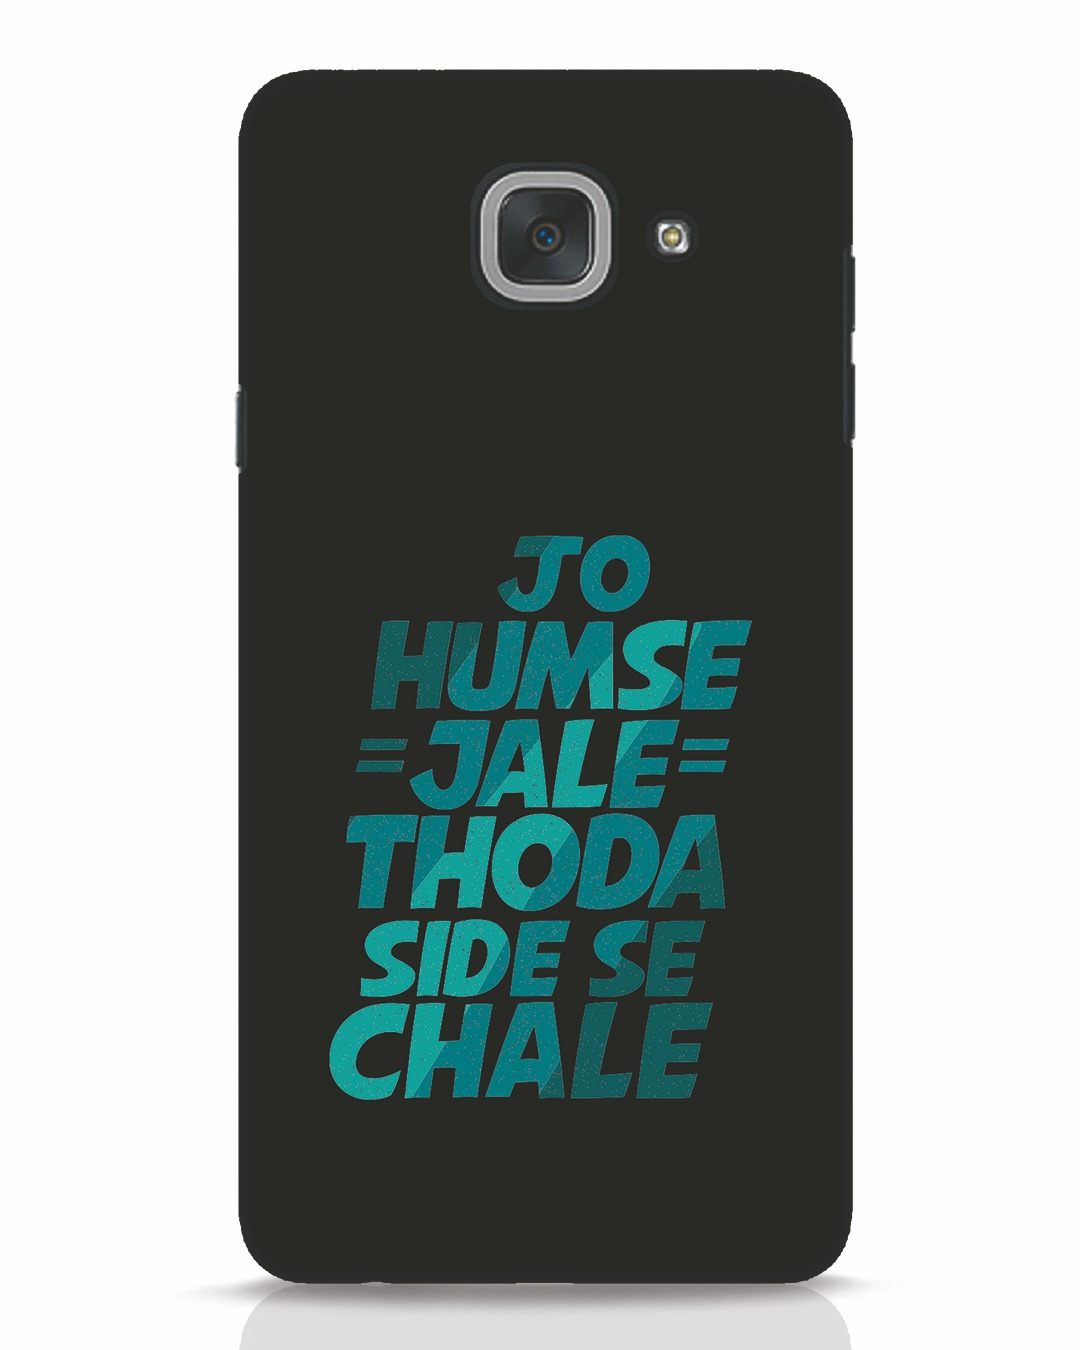 Buy Thoda Side Se Chale Samsung Galaxy J7 Max Mobile Case Online at ₹299.0  - Bewakoof.com 2d0a9693a7